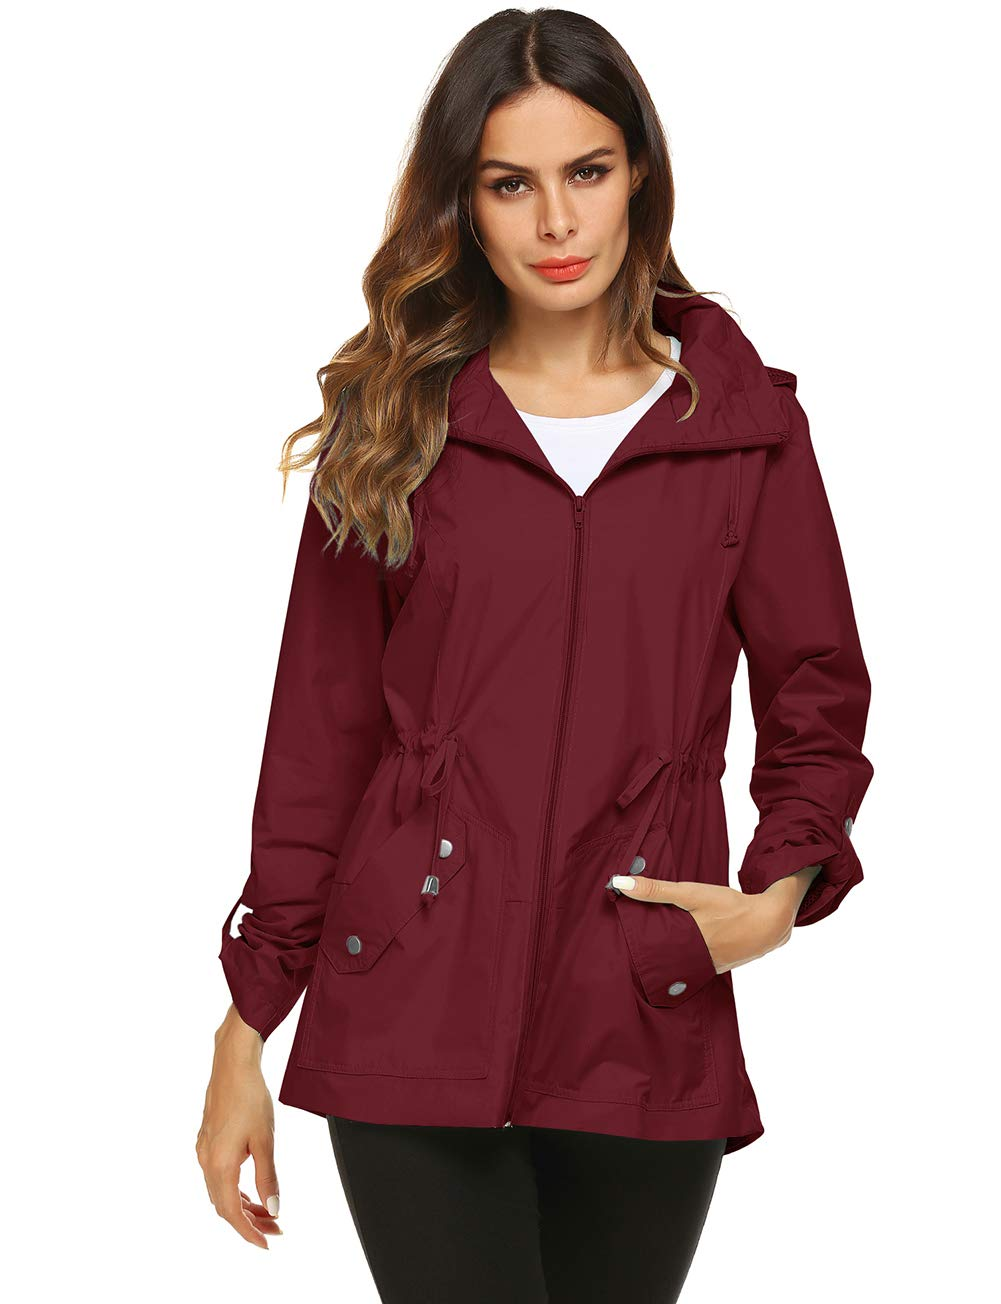 Avoogue Active Rain Jacket Women Outer Waterfall Coat Wine Red Large by Avoogue